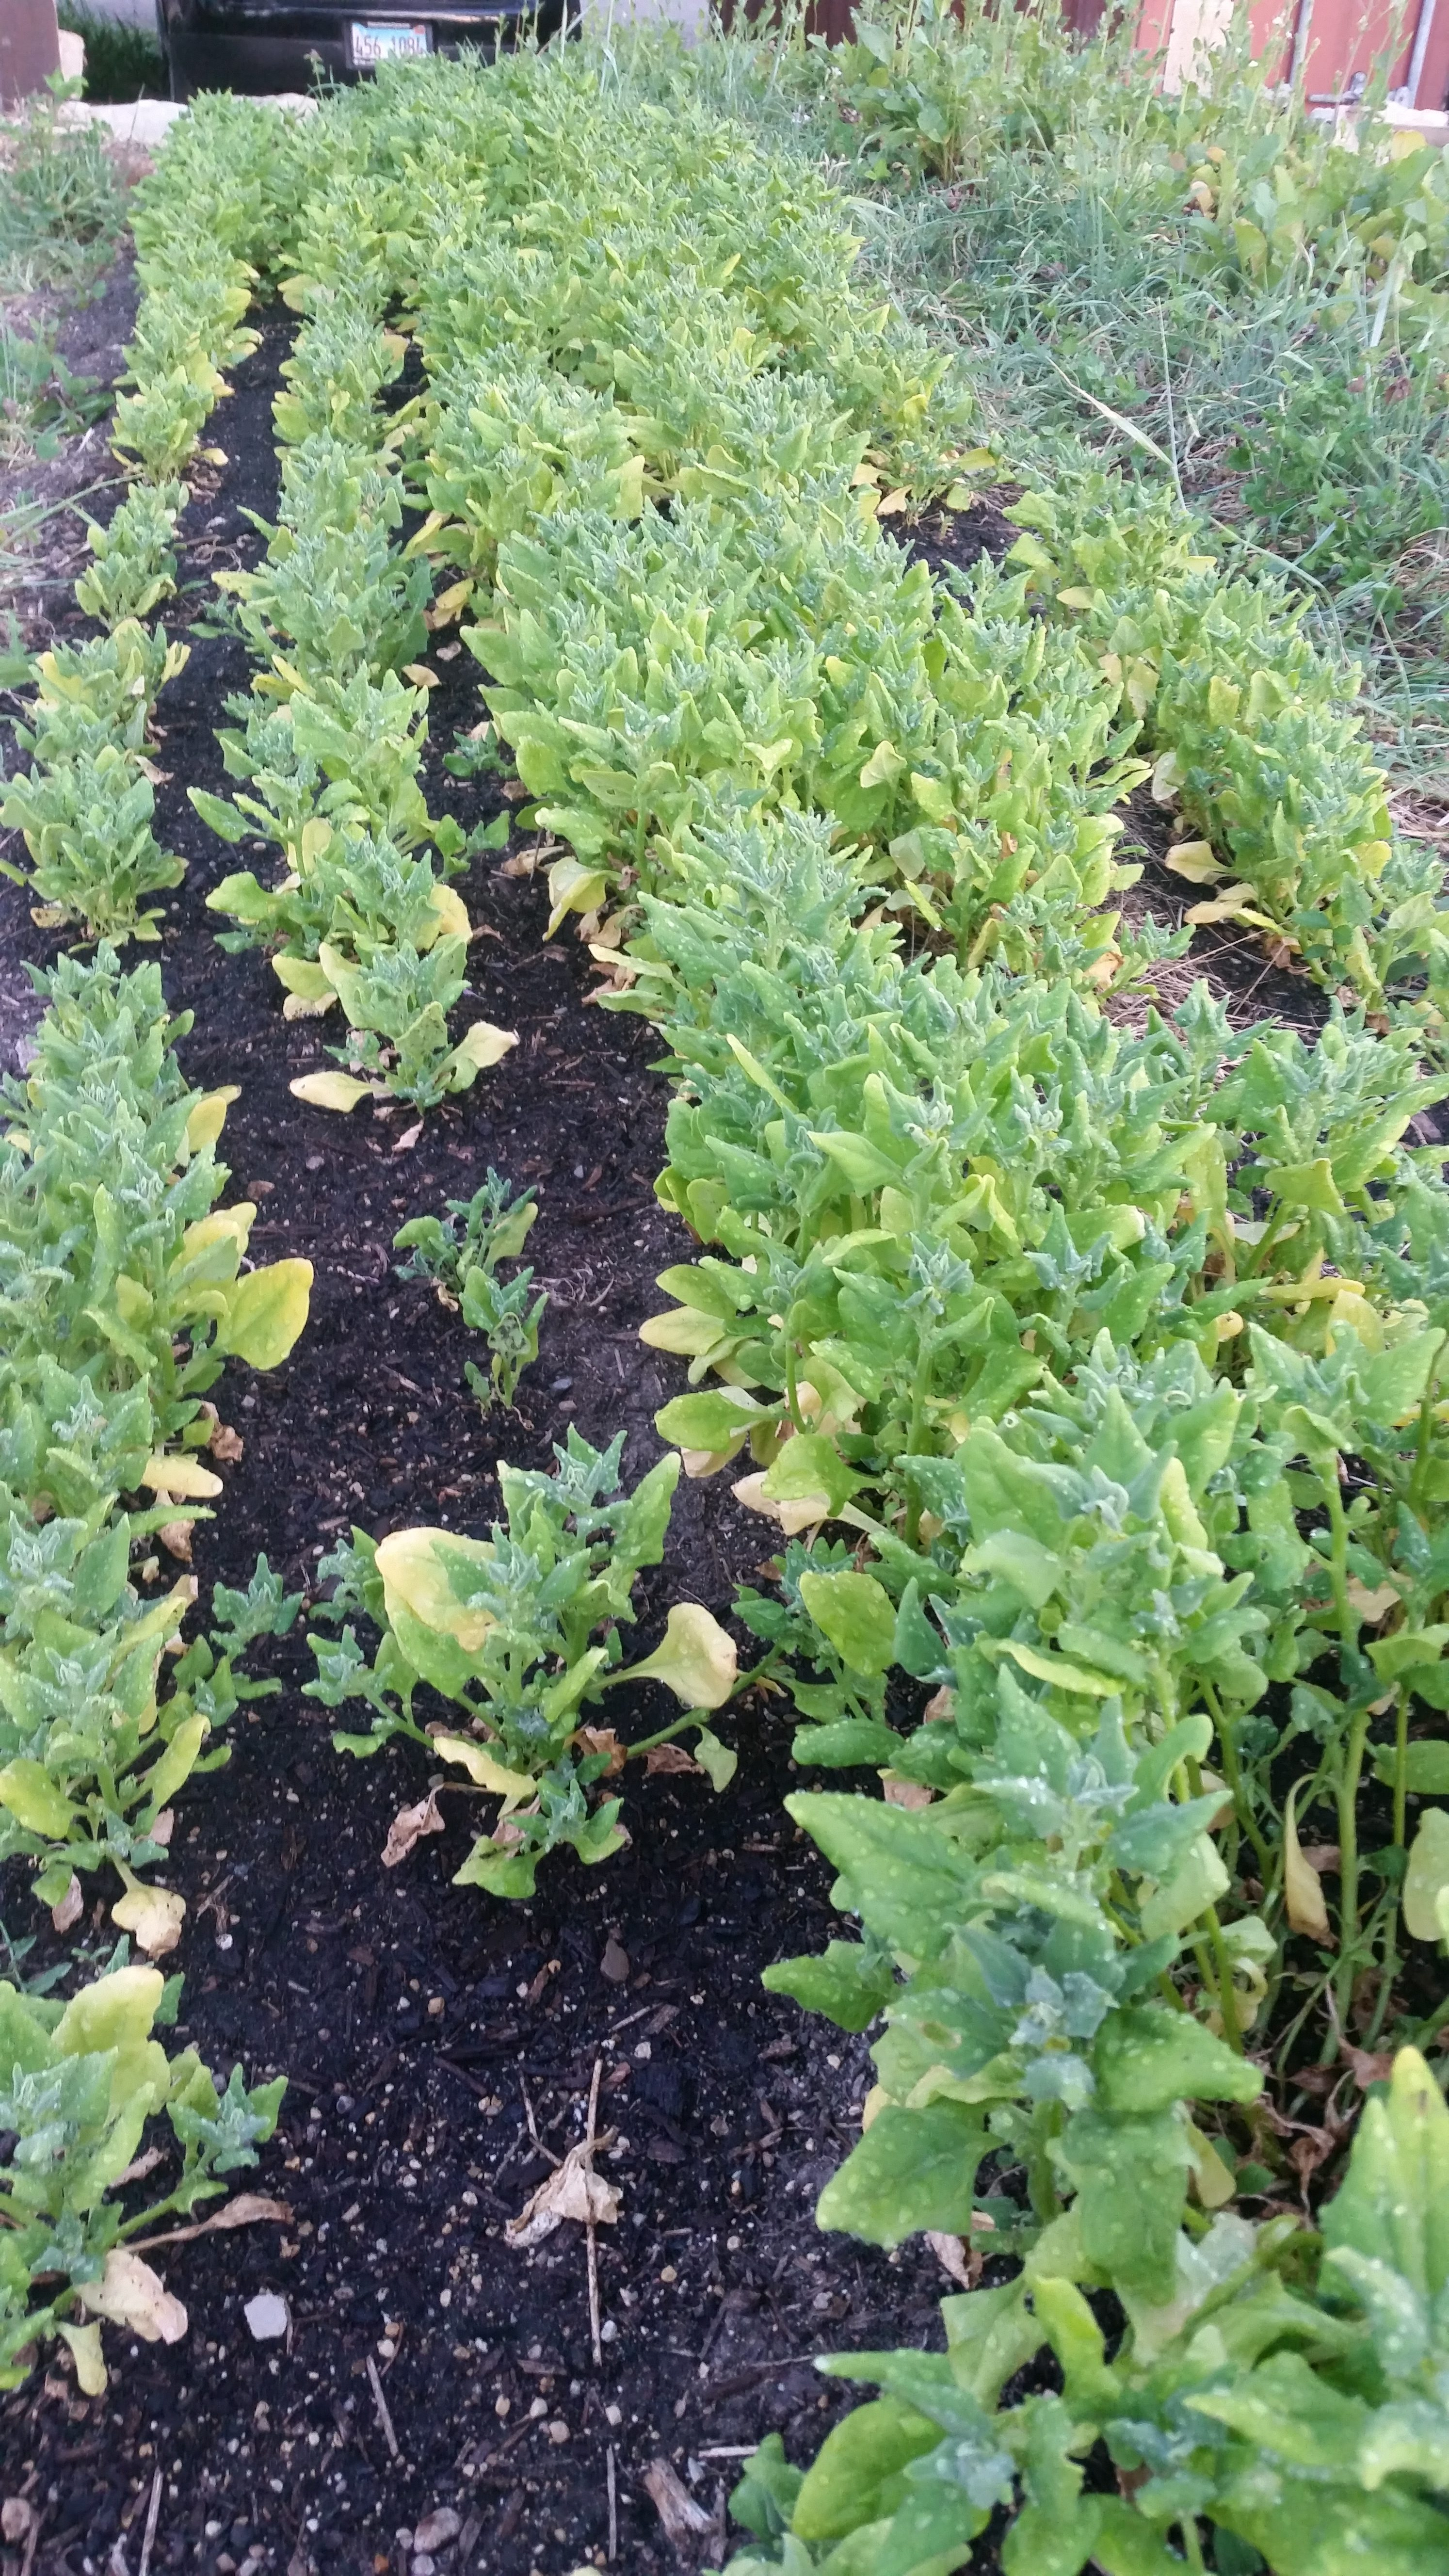 New Zealand Spinach mid-July 2019